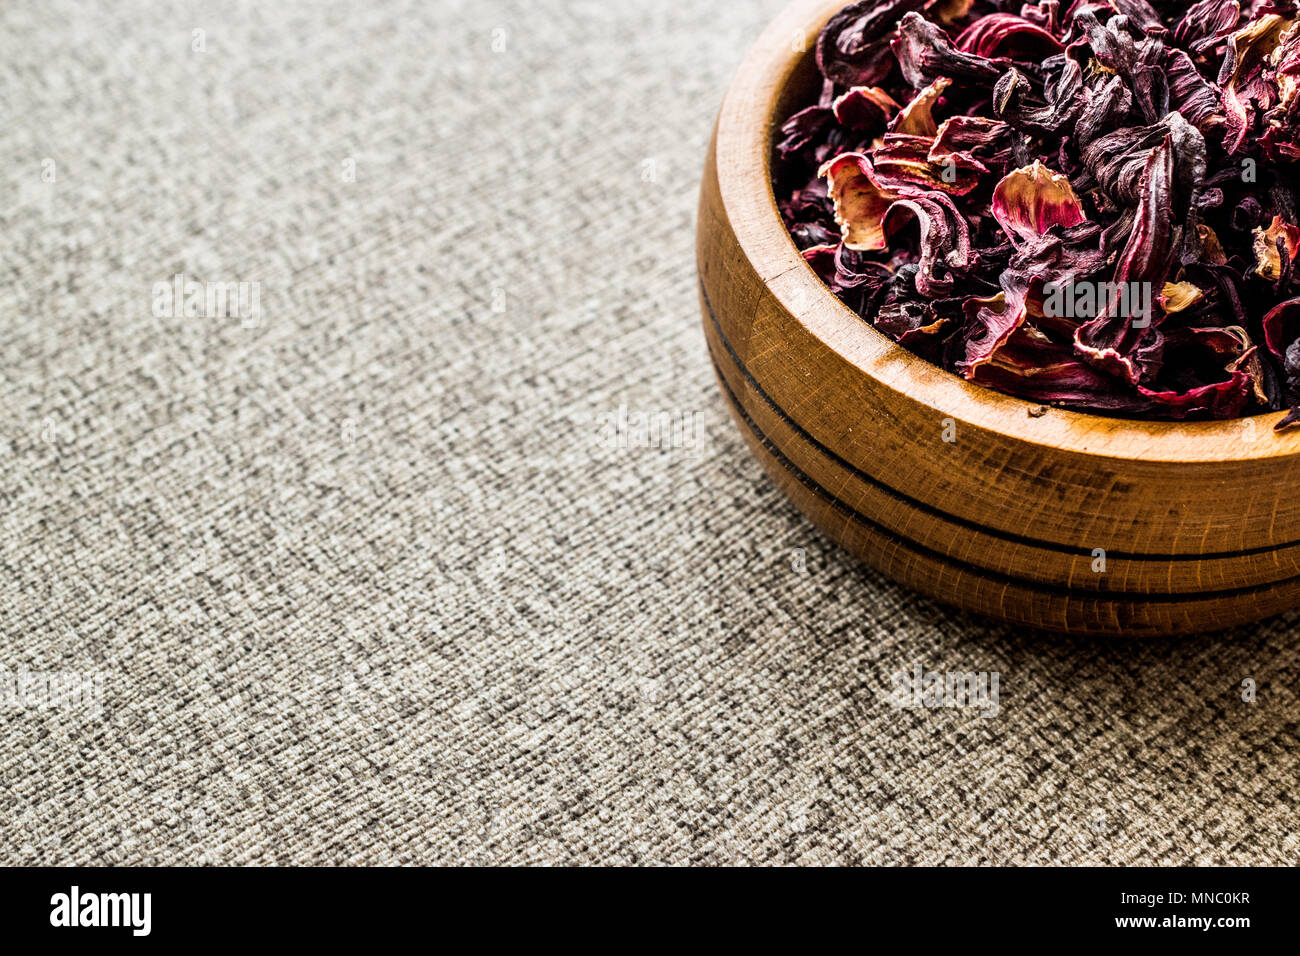 Dried Hibiscus Flowers Stock Photos Dried Hibiscus Flowers Stock